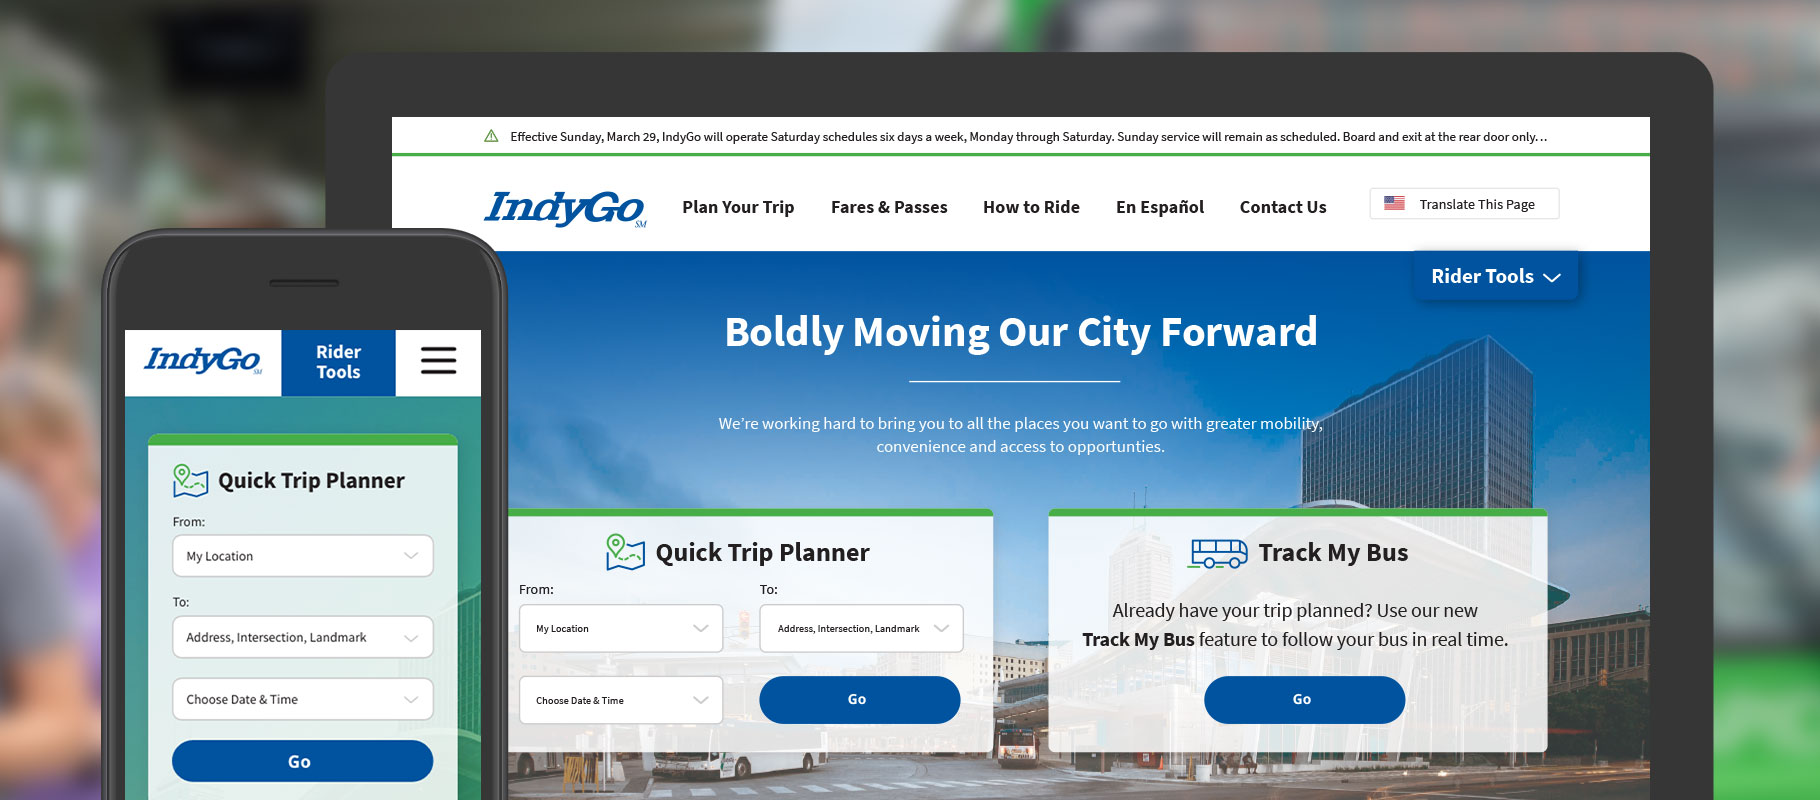 IndyGo website design on a smartphone and desktop computer